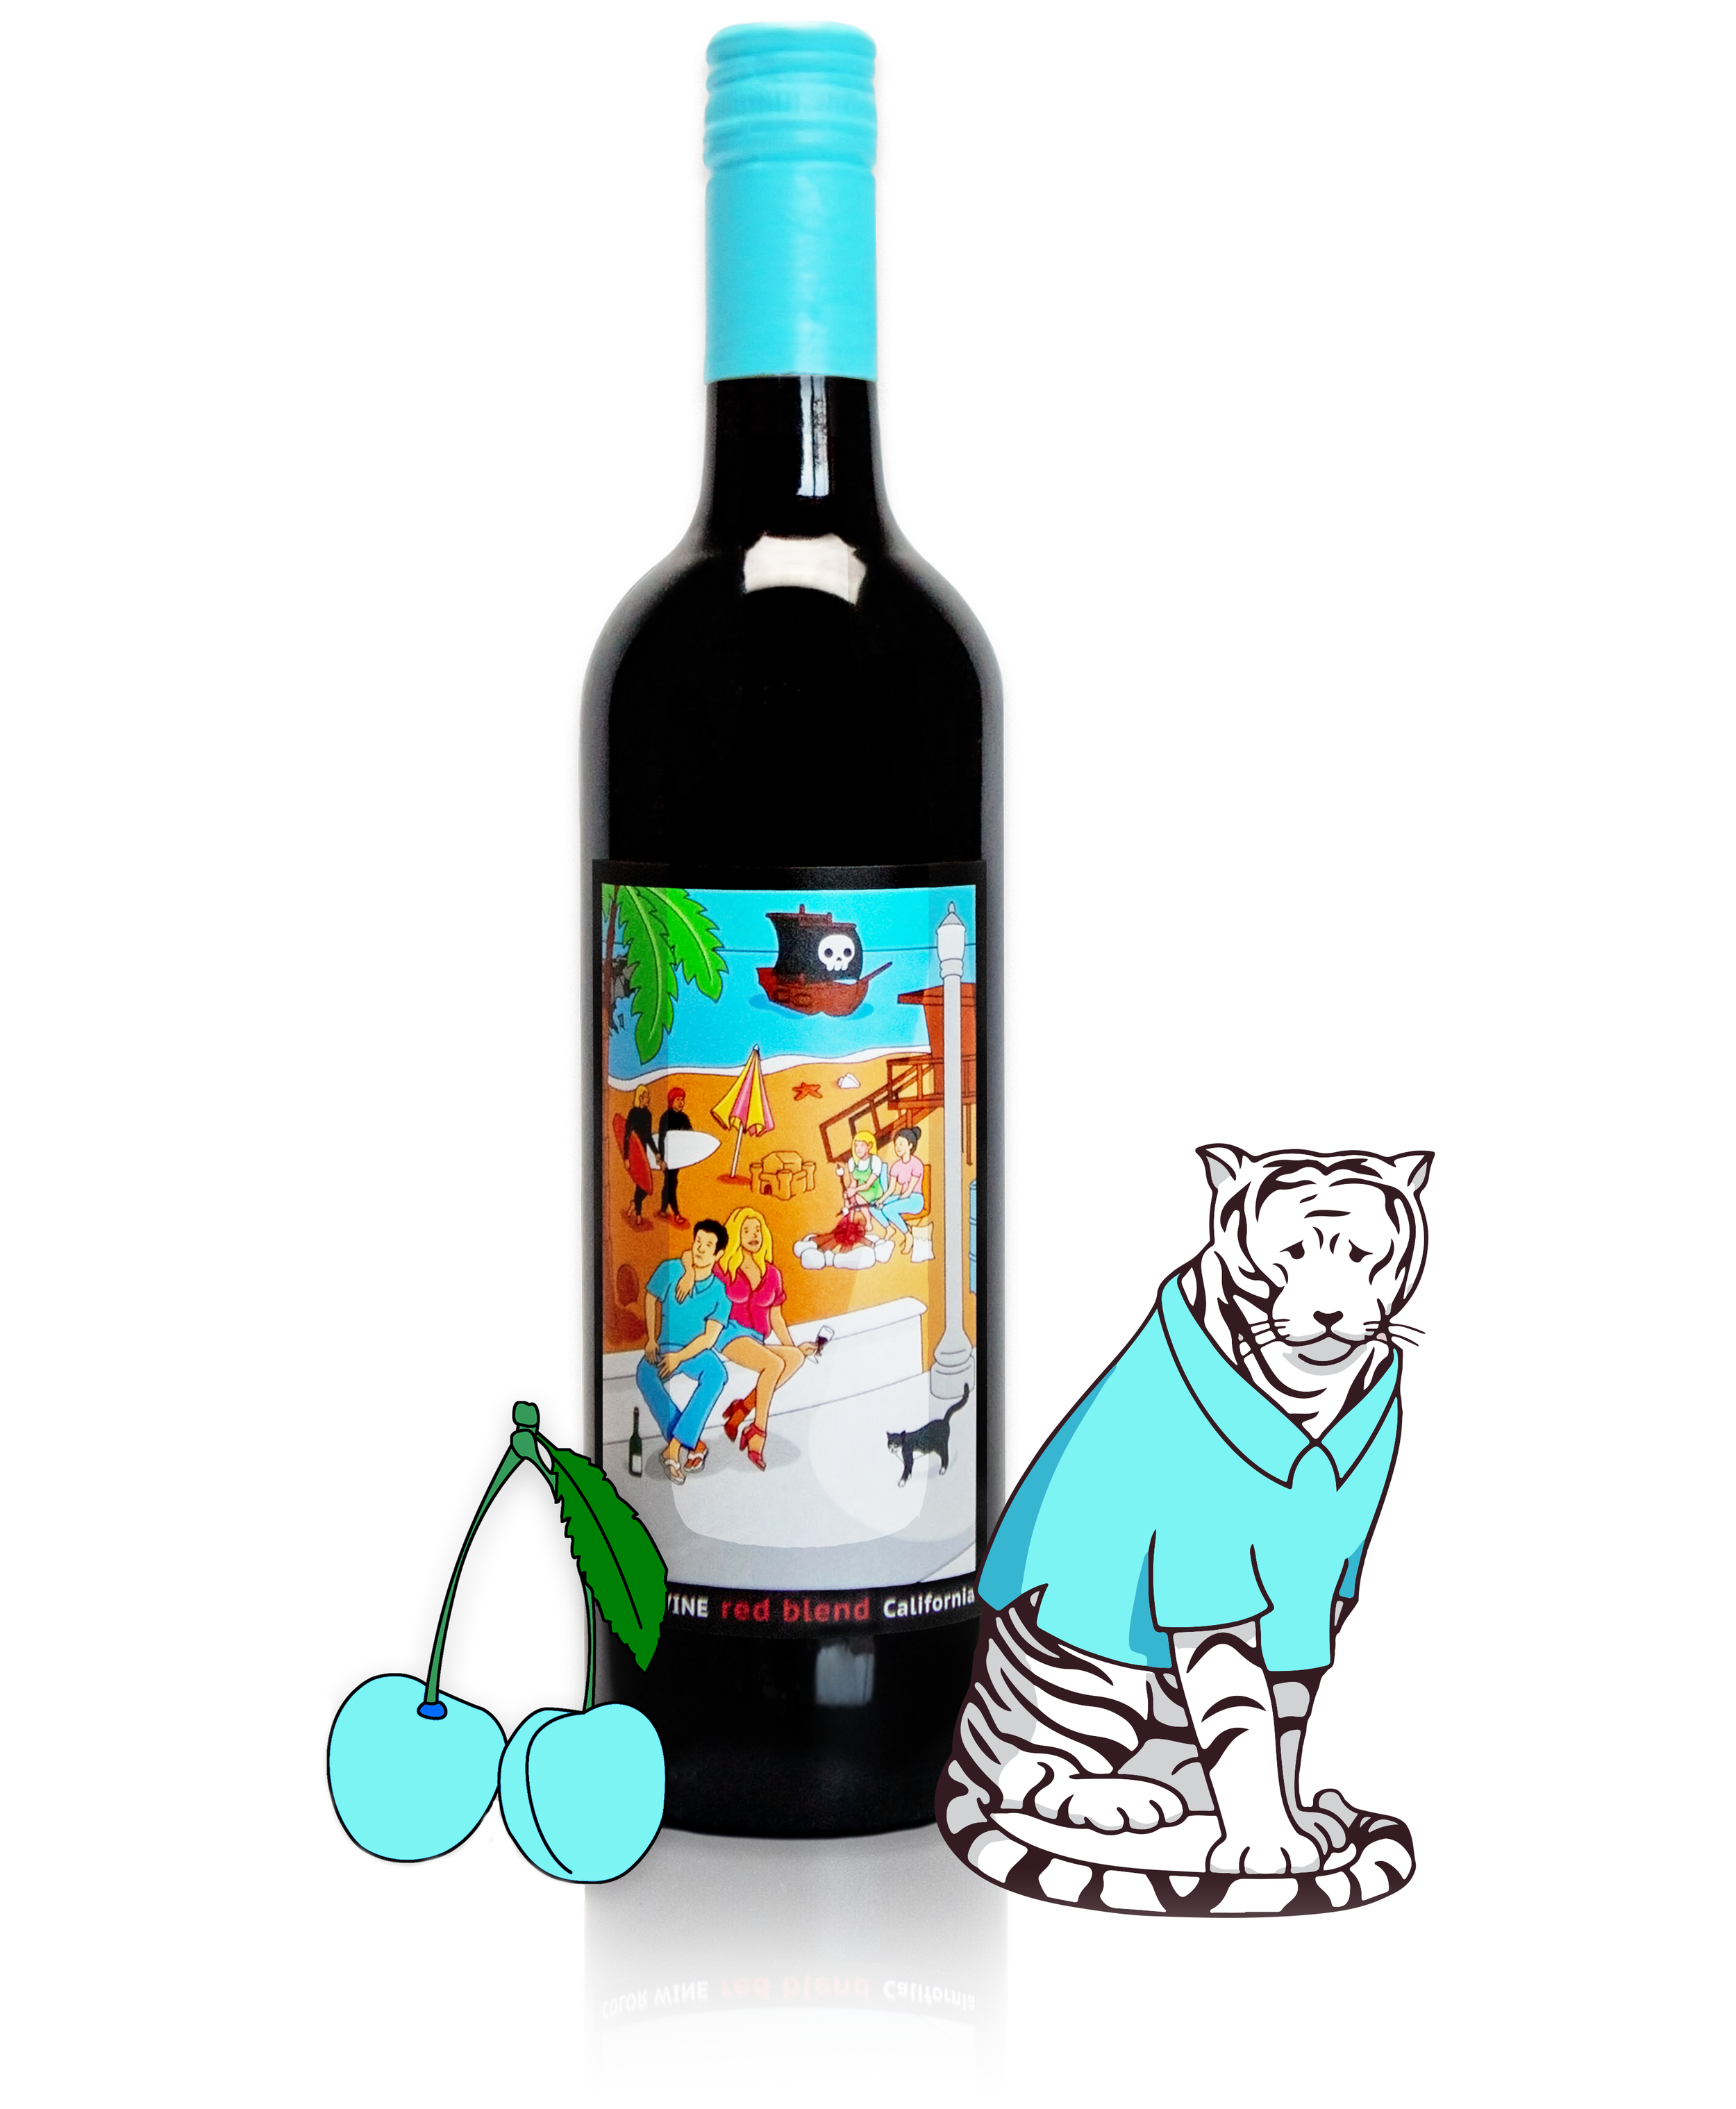 enjoy our red blend - slightly chilled with the sun still shining.